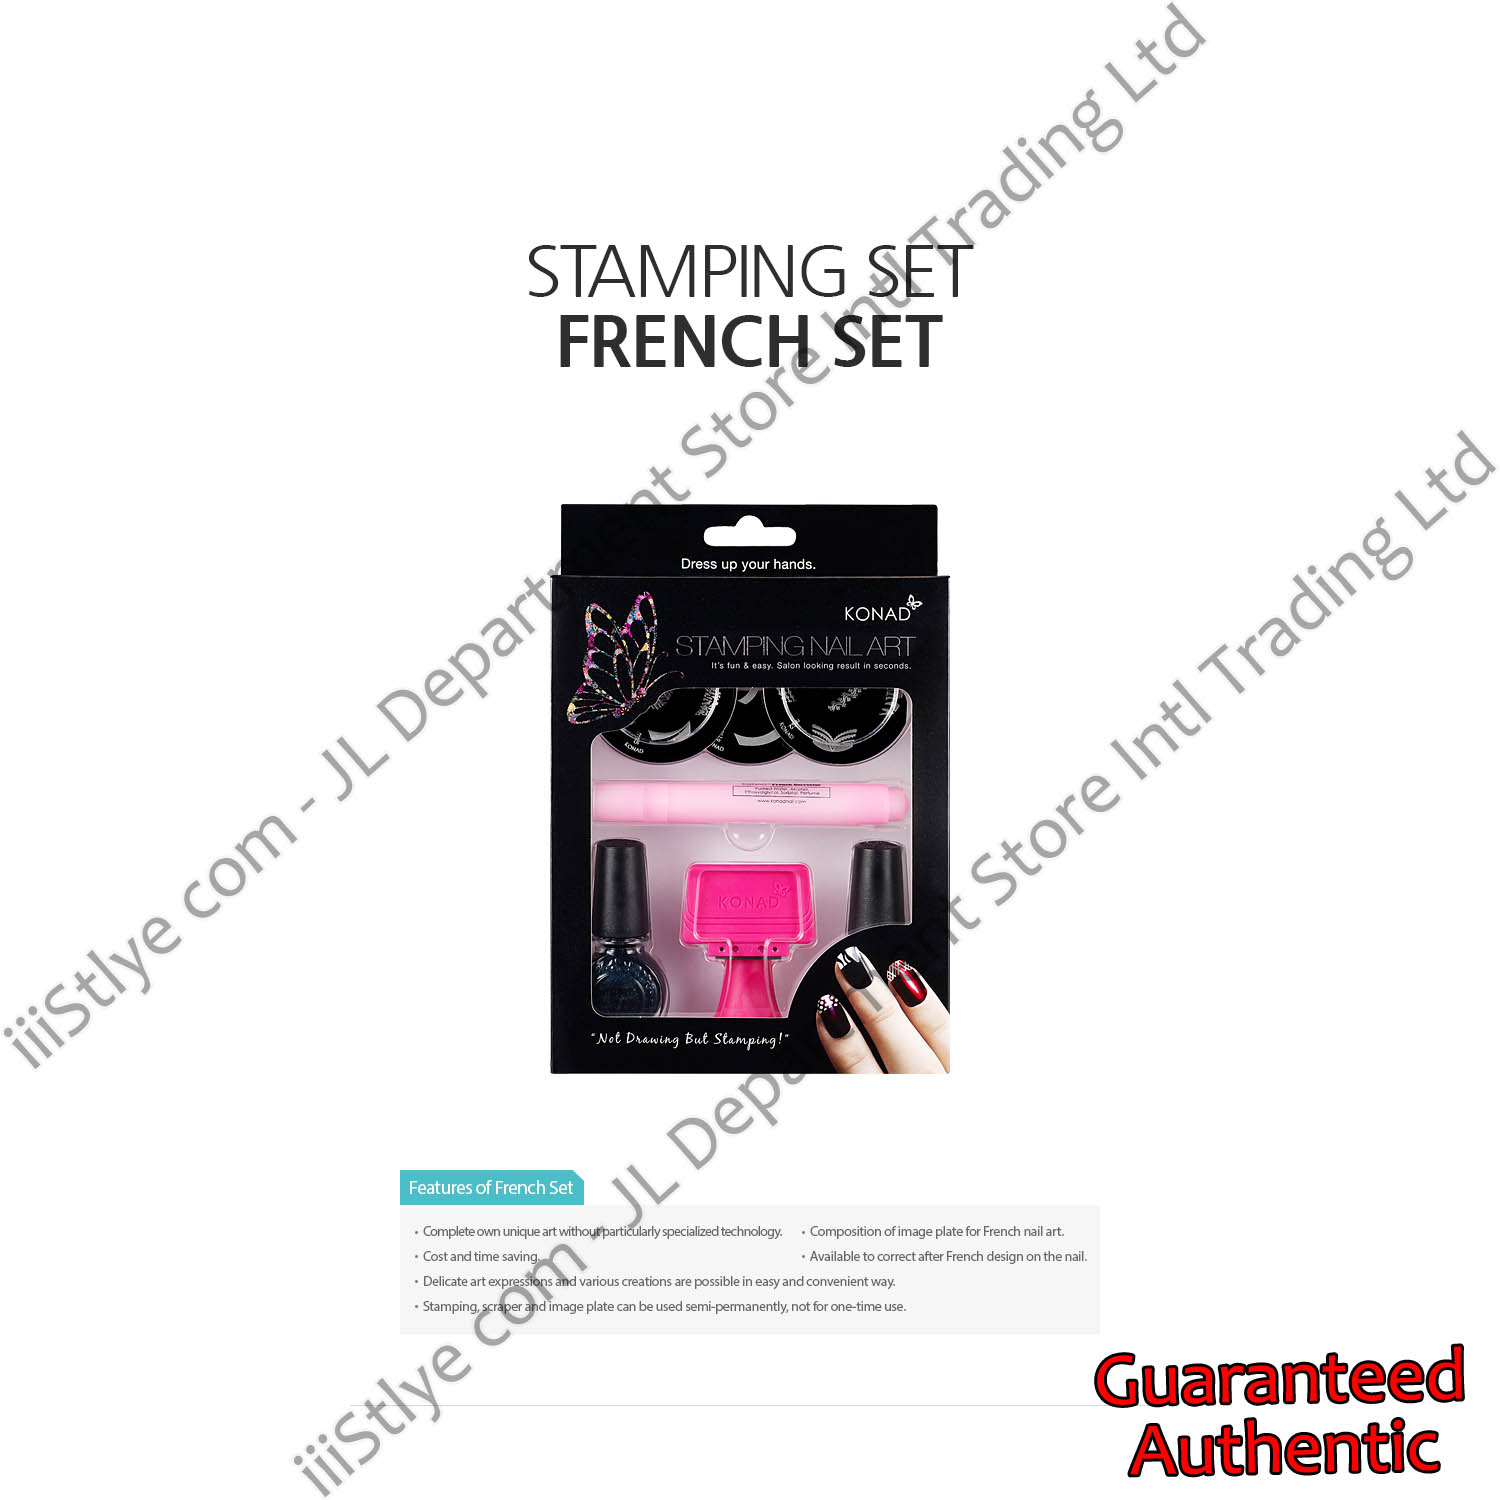 stamping set french set